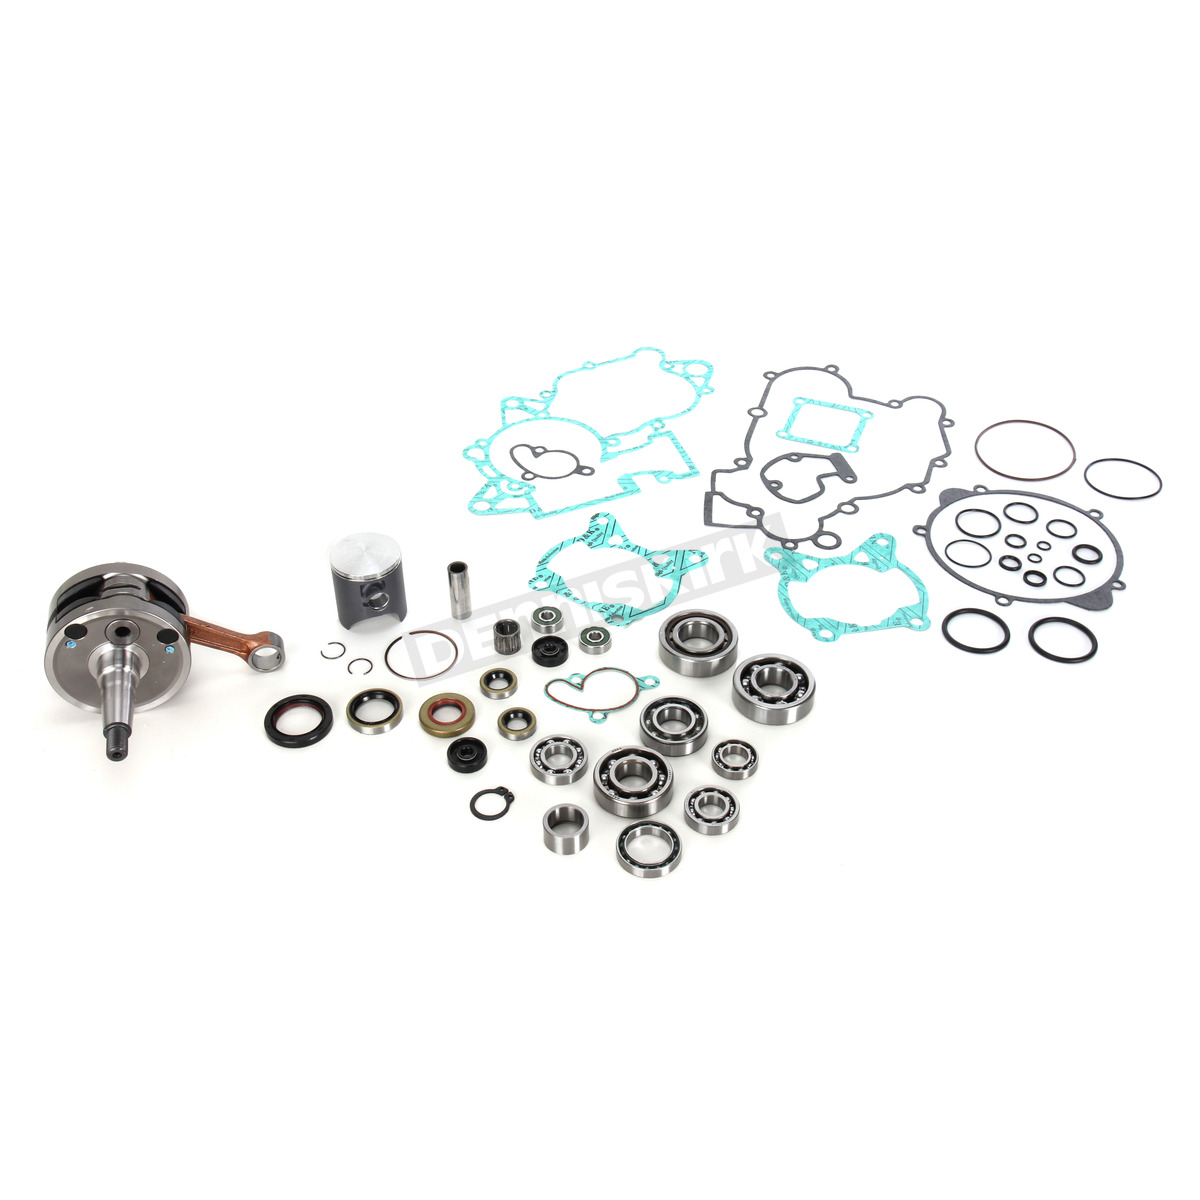 Wrench Rabbit Complete Engine Rebuild Kit 47mm Bore